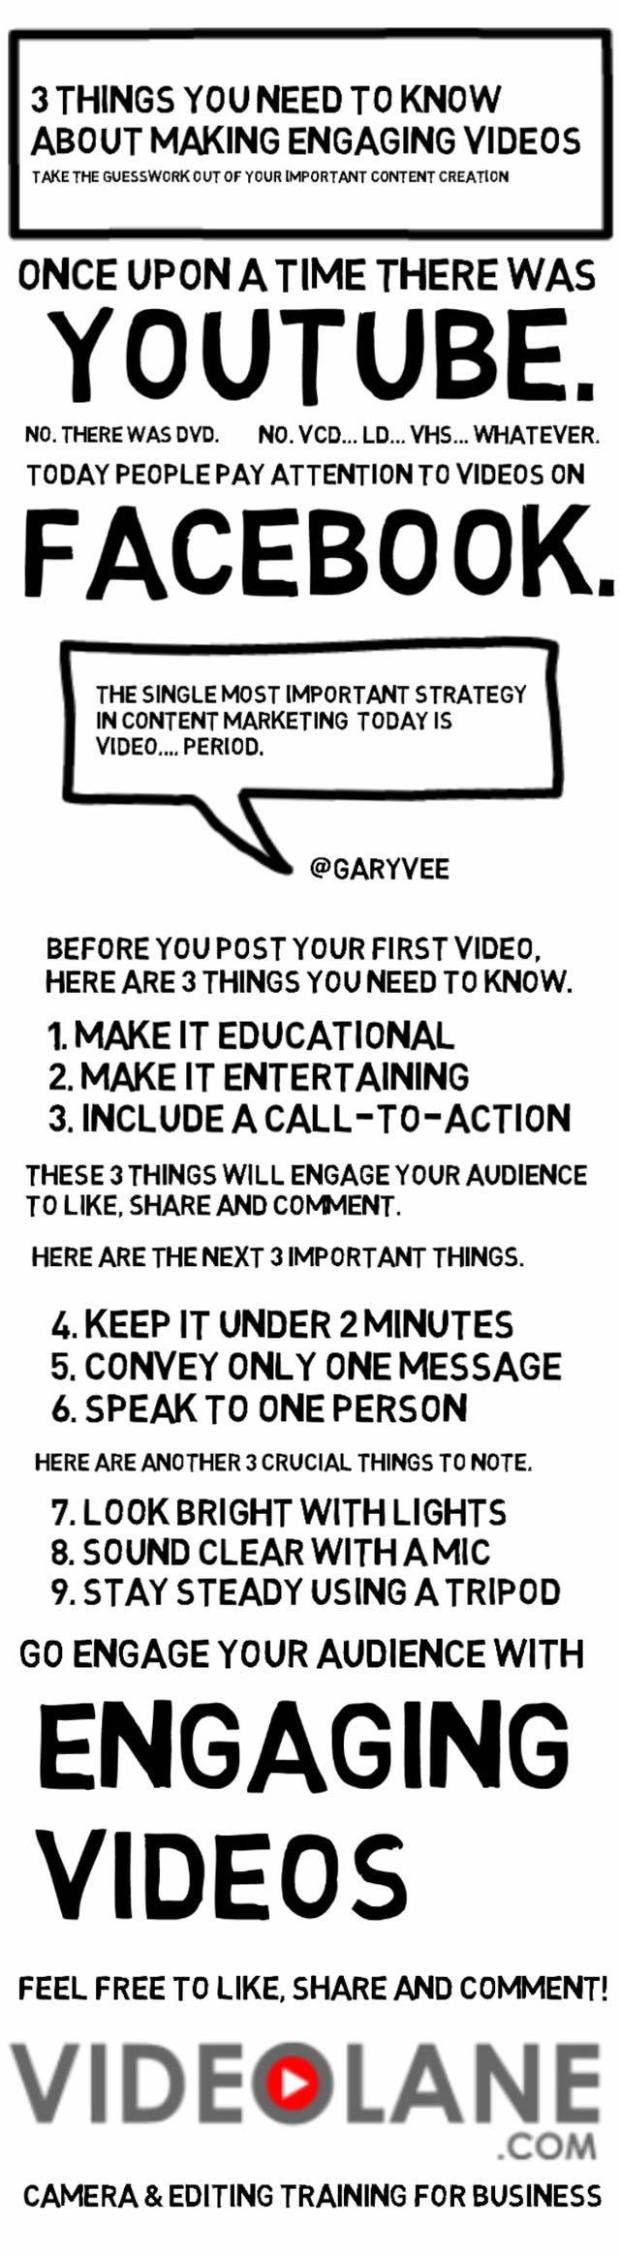 3 Things You Need to Know About Making Engaging Videos